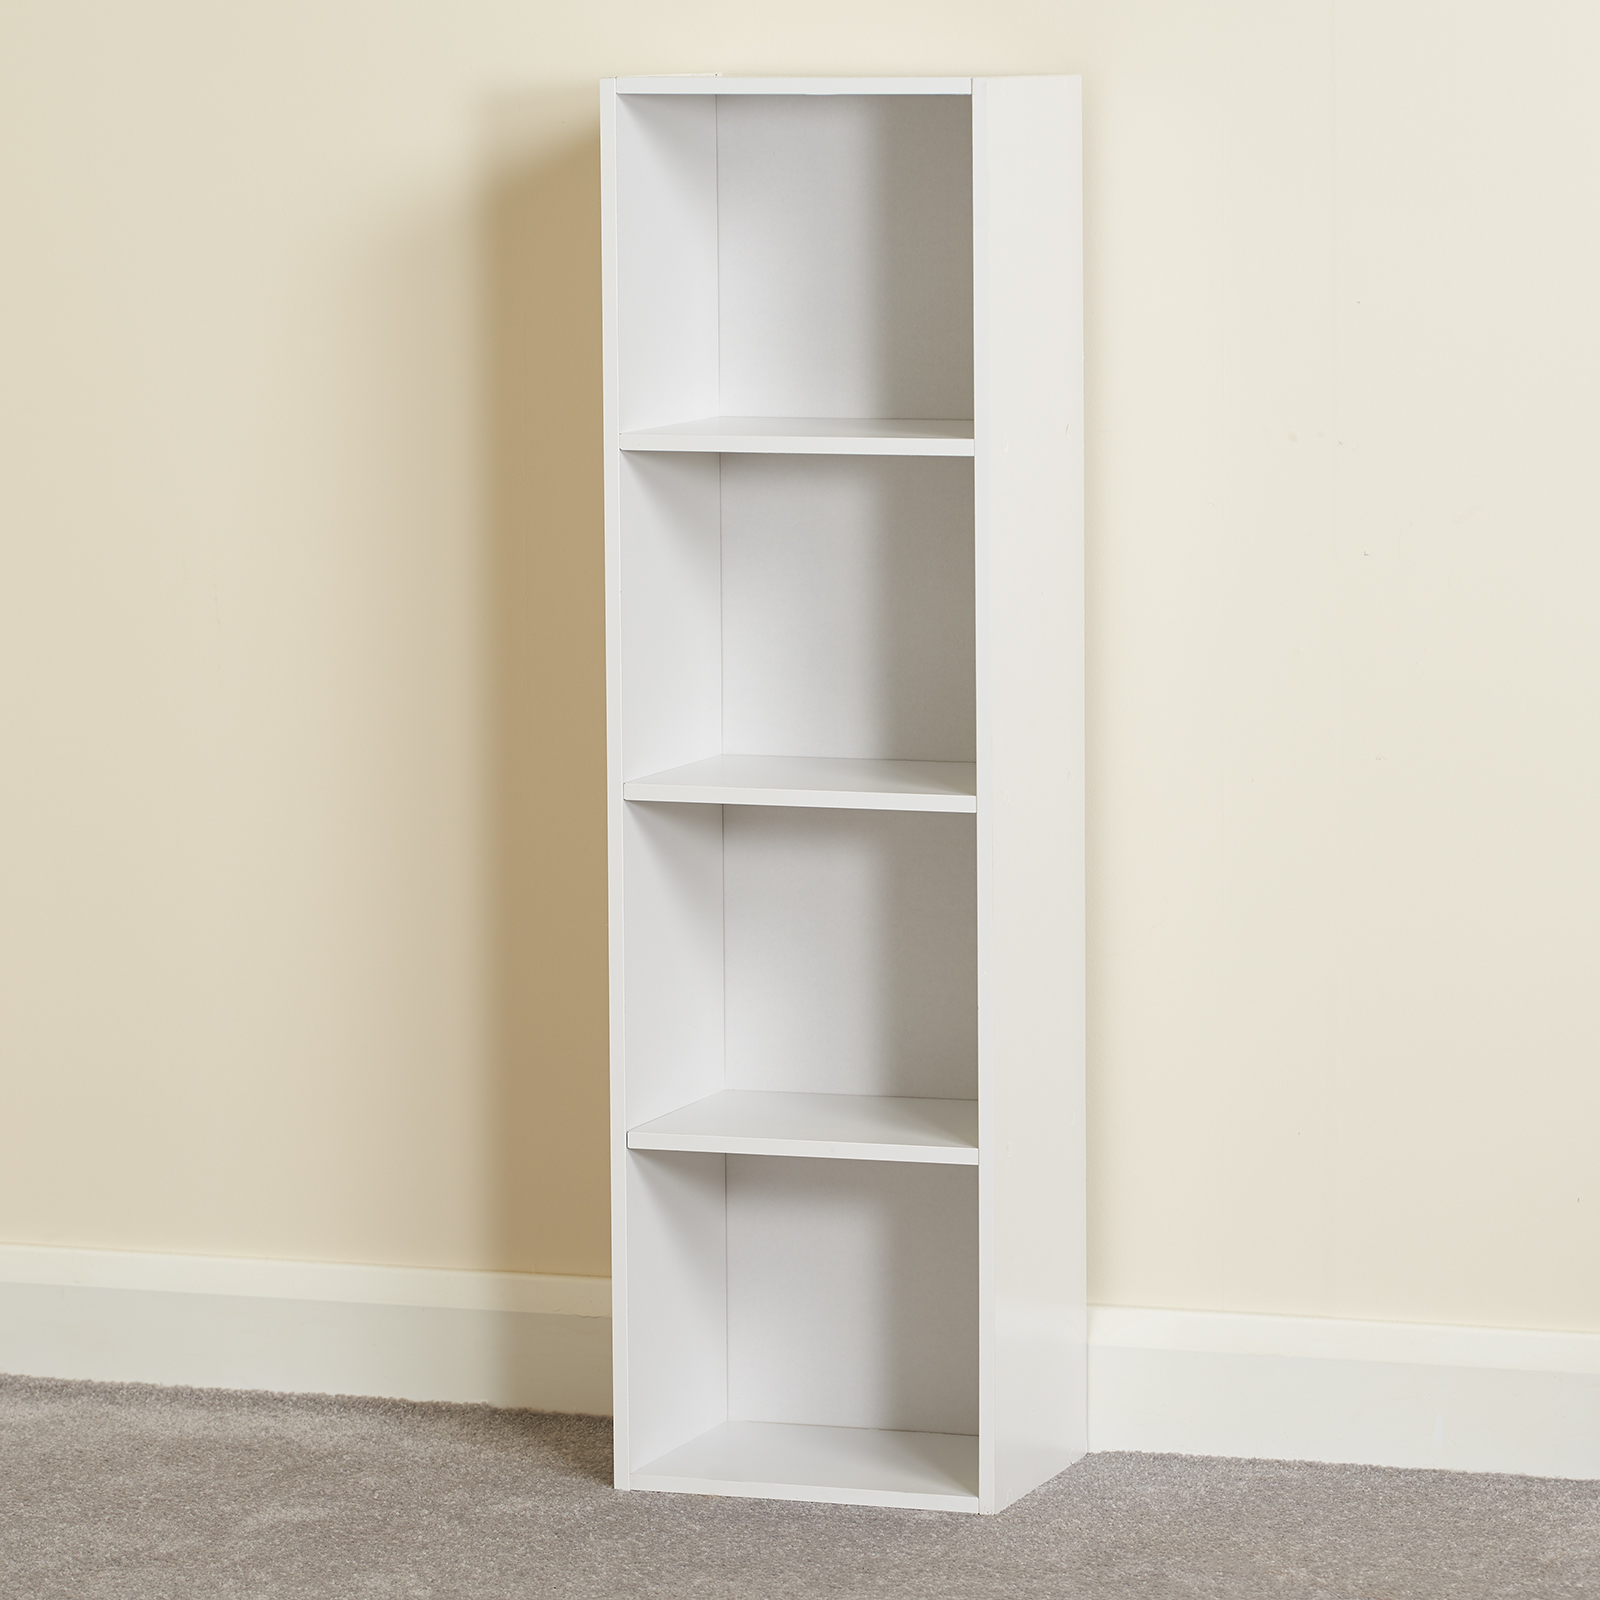 Hartleys-4-Tier-White-Bookcase-Wooden-Display-Shelving-Unit-amp-Fabric-Storage-Box thumbnail 32